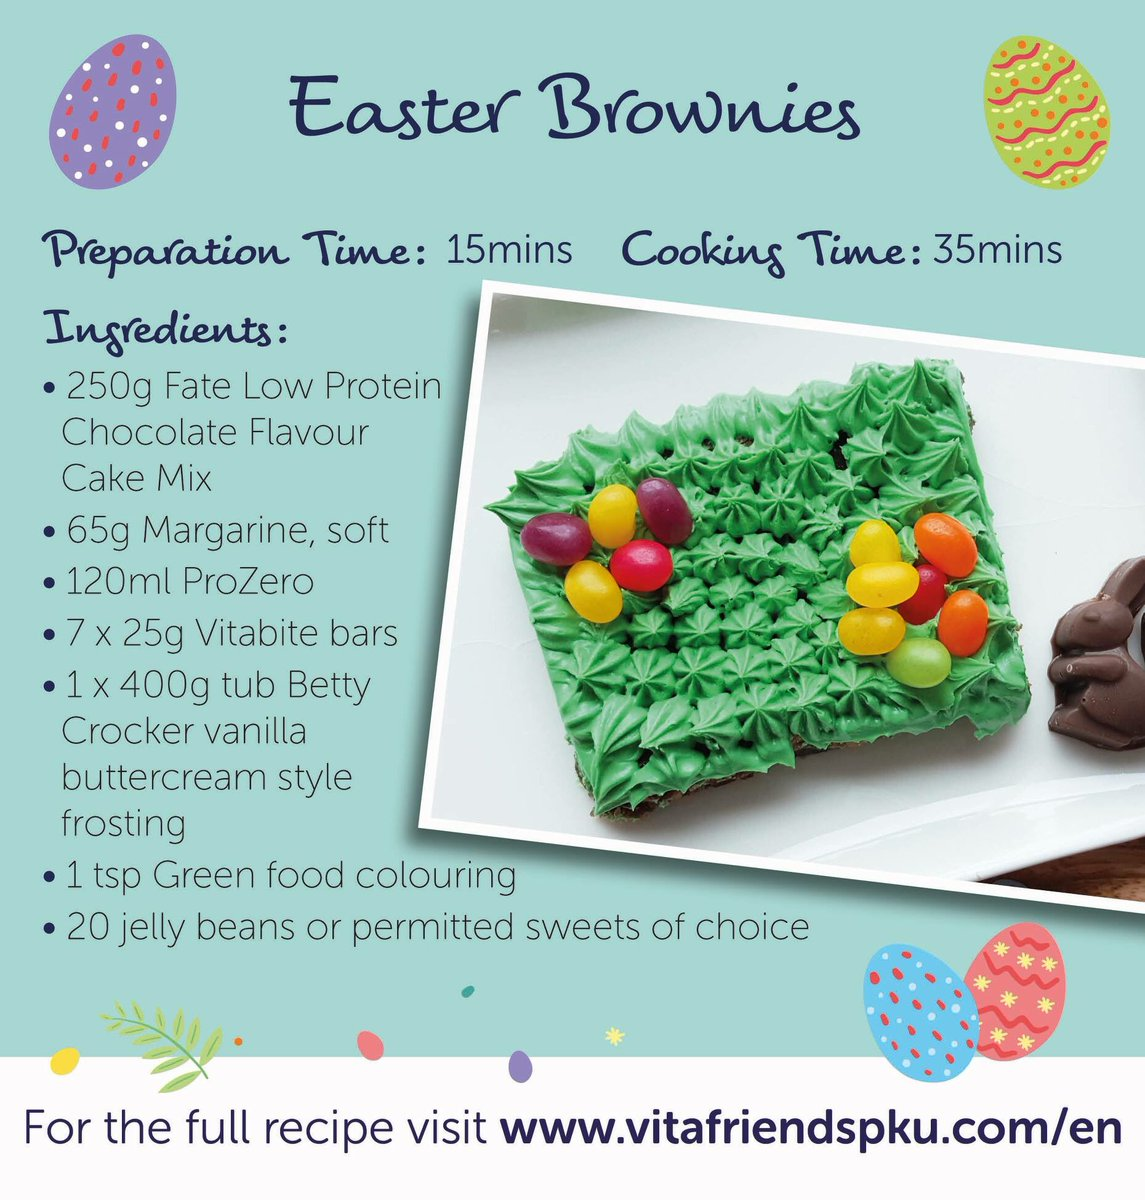 The Easter countdown continues! We&#39;ve got a delicious Easter brownie recipe for you today. Why don&#39;t you give it a go and let us know what you think? Recipe is here:  https://www. vitafriendspku.com/en/recipes/low -protein-brownies/ &nbsp; …  #pku #pkurecipes #AVitafriendsEaster<br>http://pic.twitter.com/fjTKwMlgLe